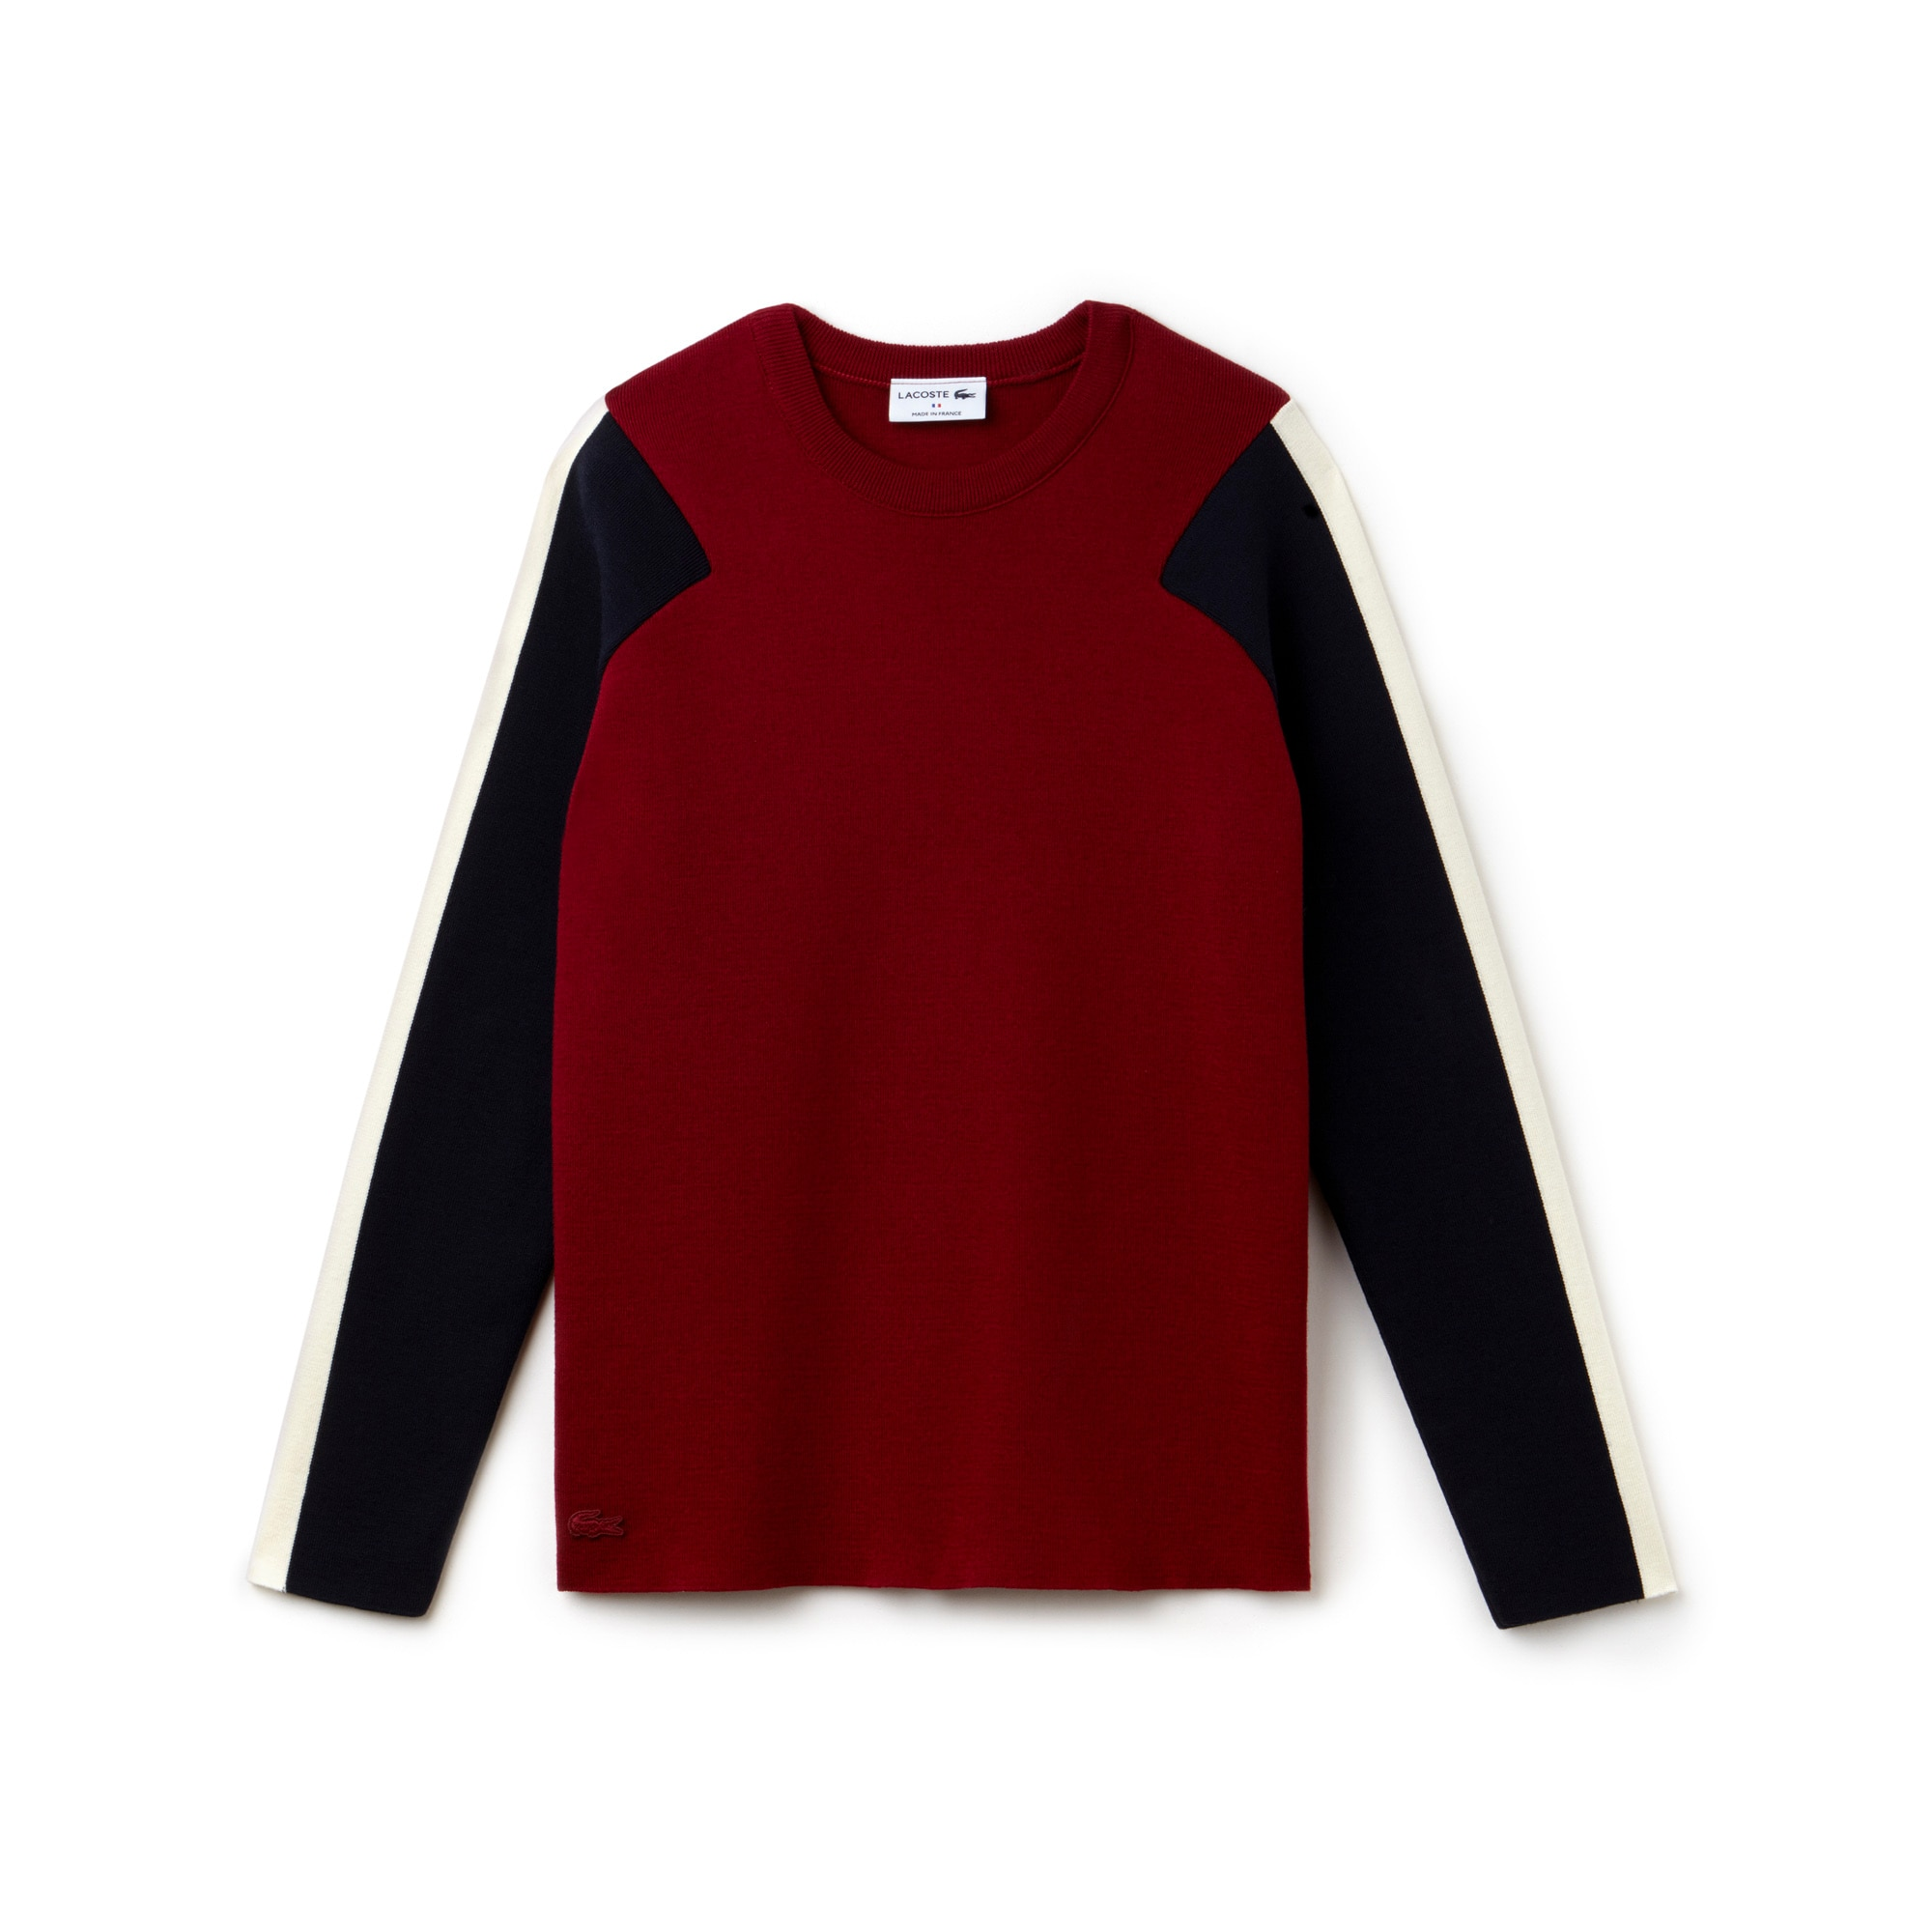 Women's Made in France Crew Neck Colorblock Knit Sweater